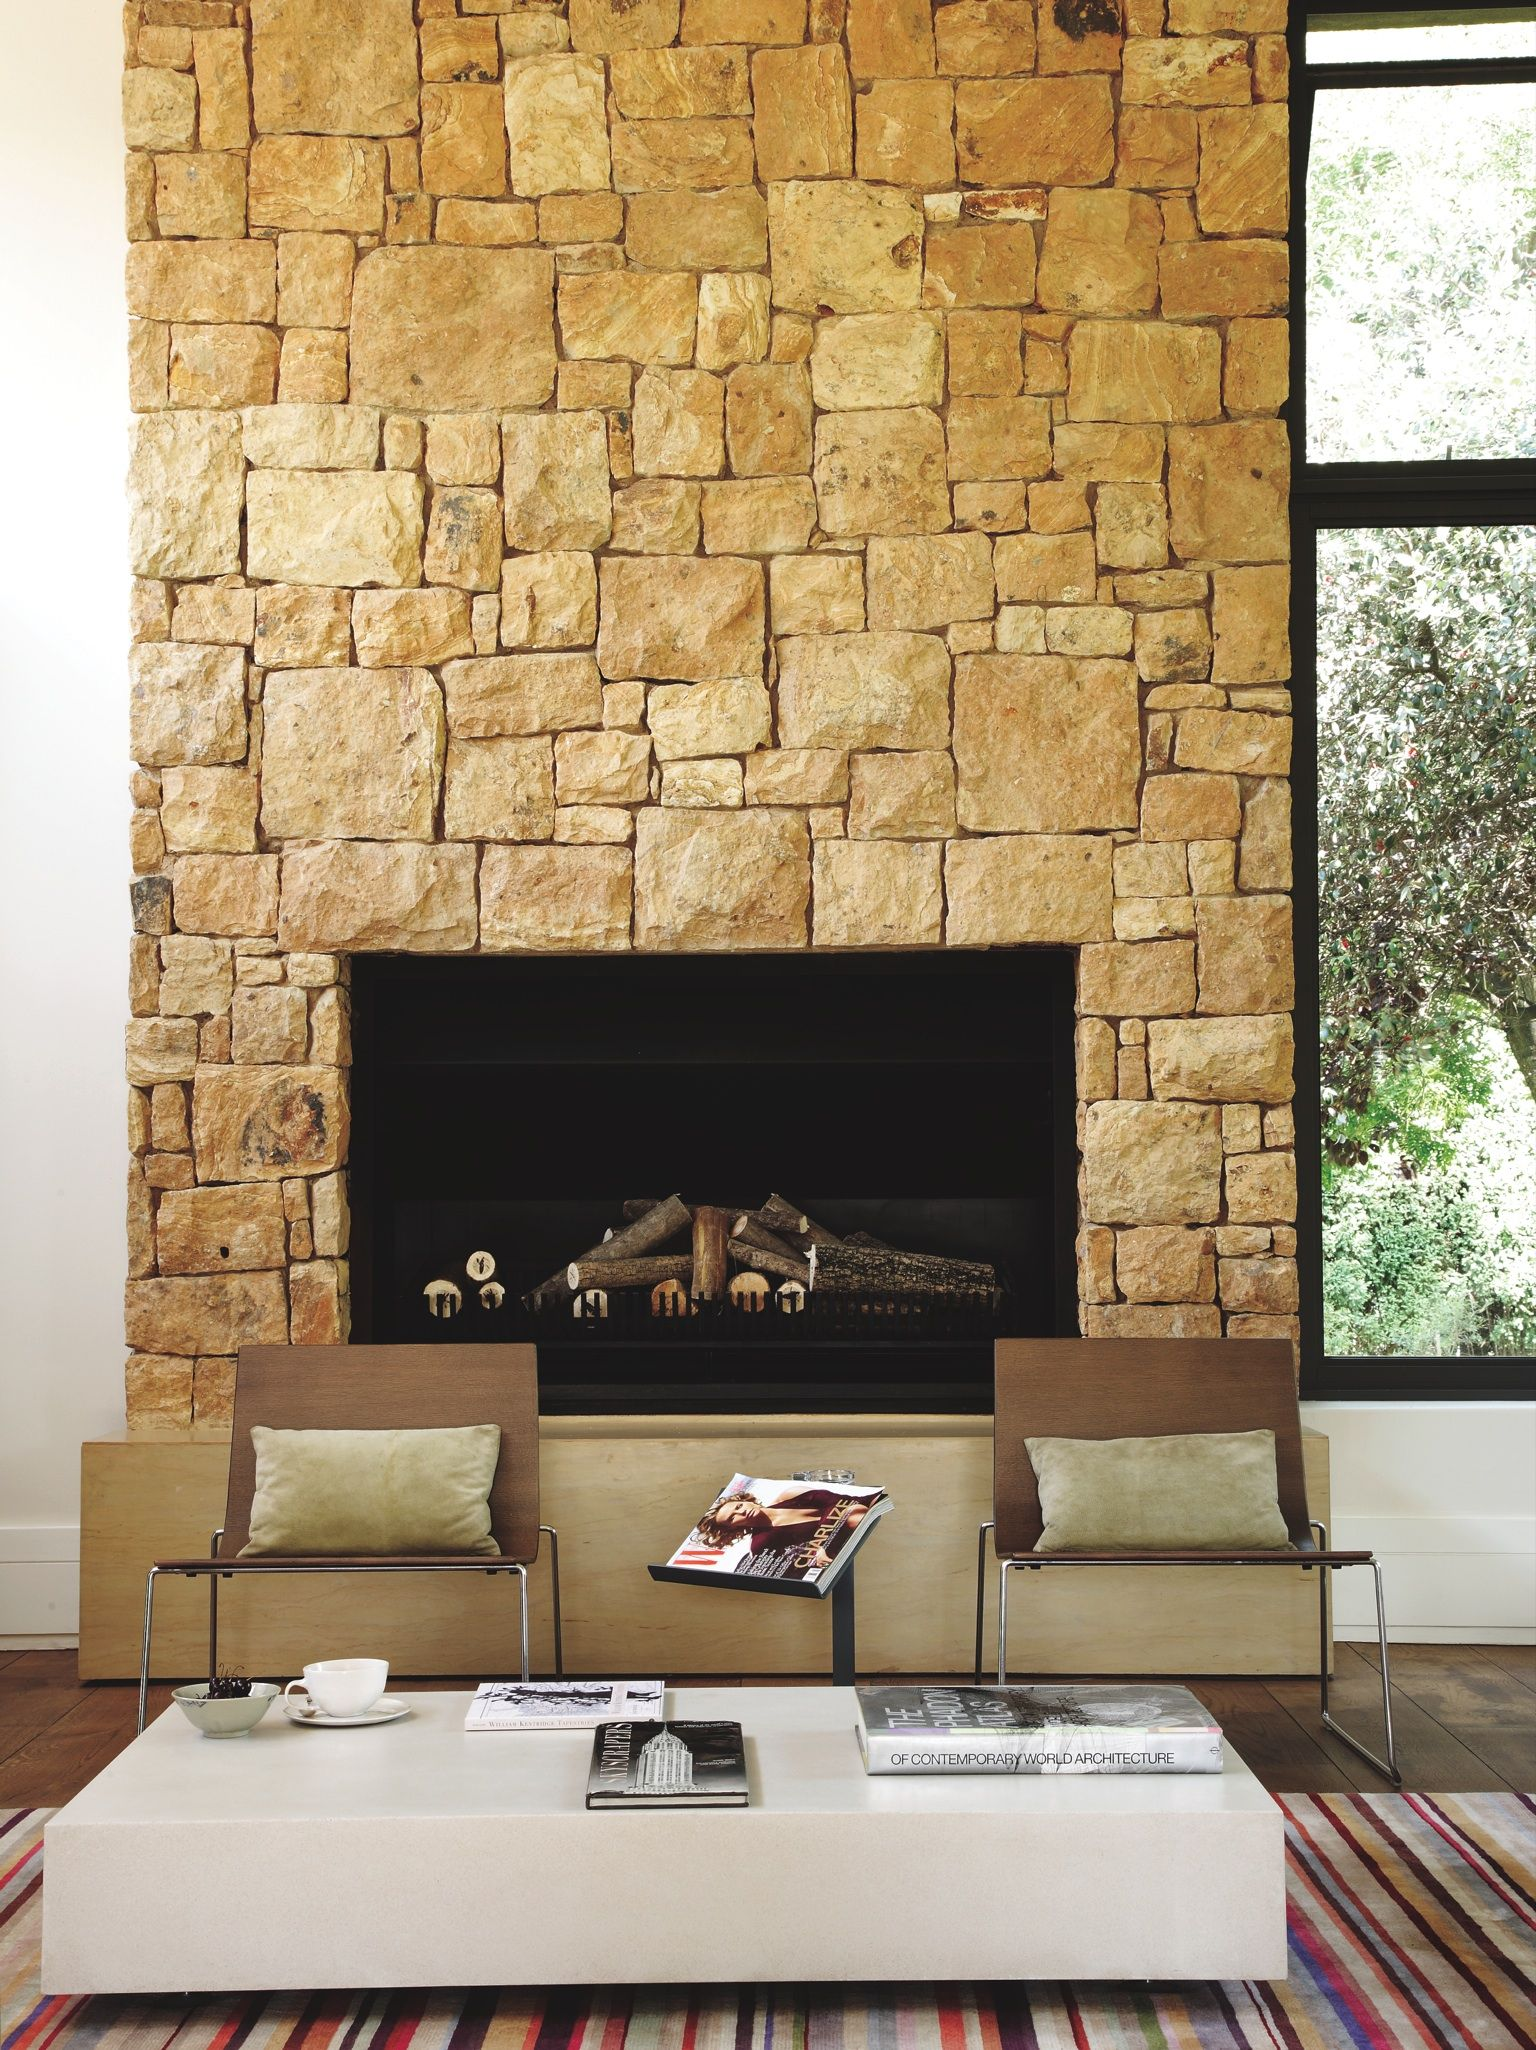 me fireplace ideas sandstone tittle positivemind inspiring